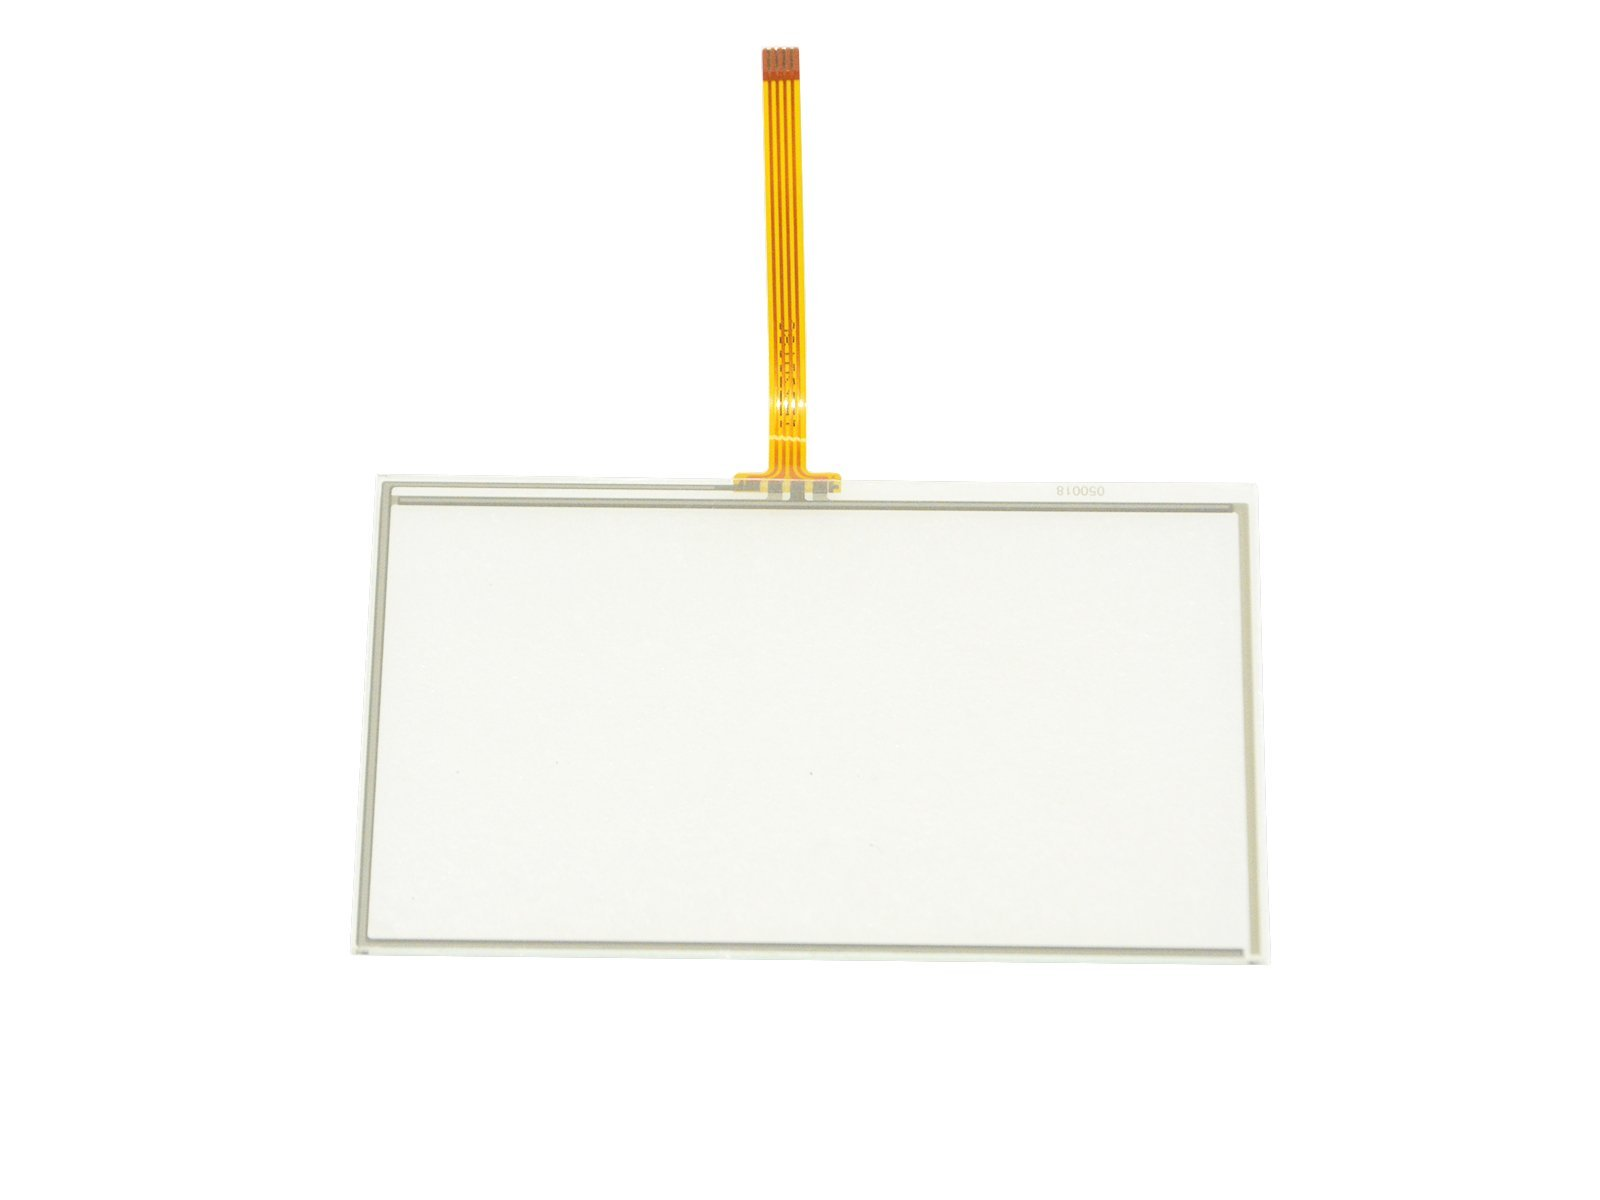 NJYTouch 5inch 4 Wire Resistive Touch Panel Digitizer Film to Glass 117.3x71.6mm GPS LCD Screen With 4 Wire USB Driver Controller Kit by NJYTouch (Image #3)